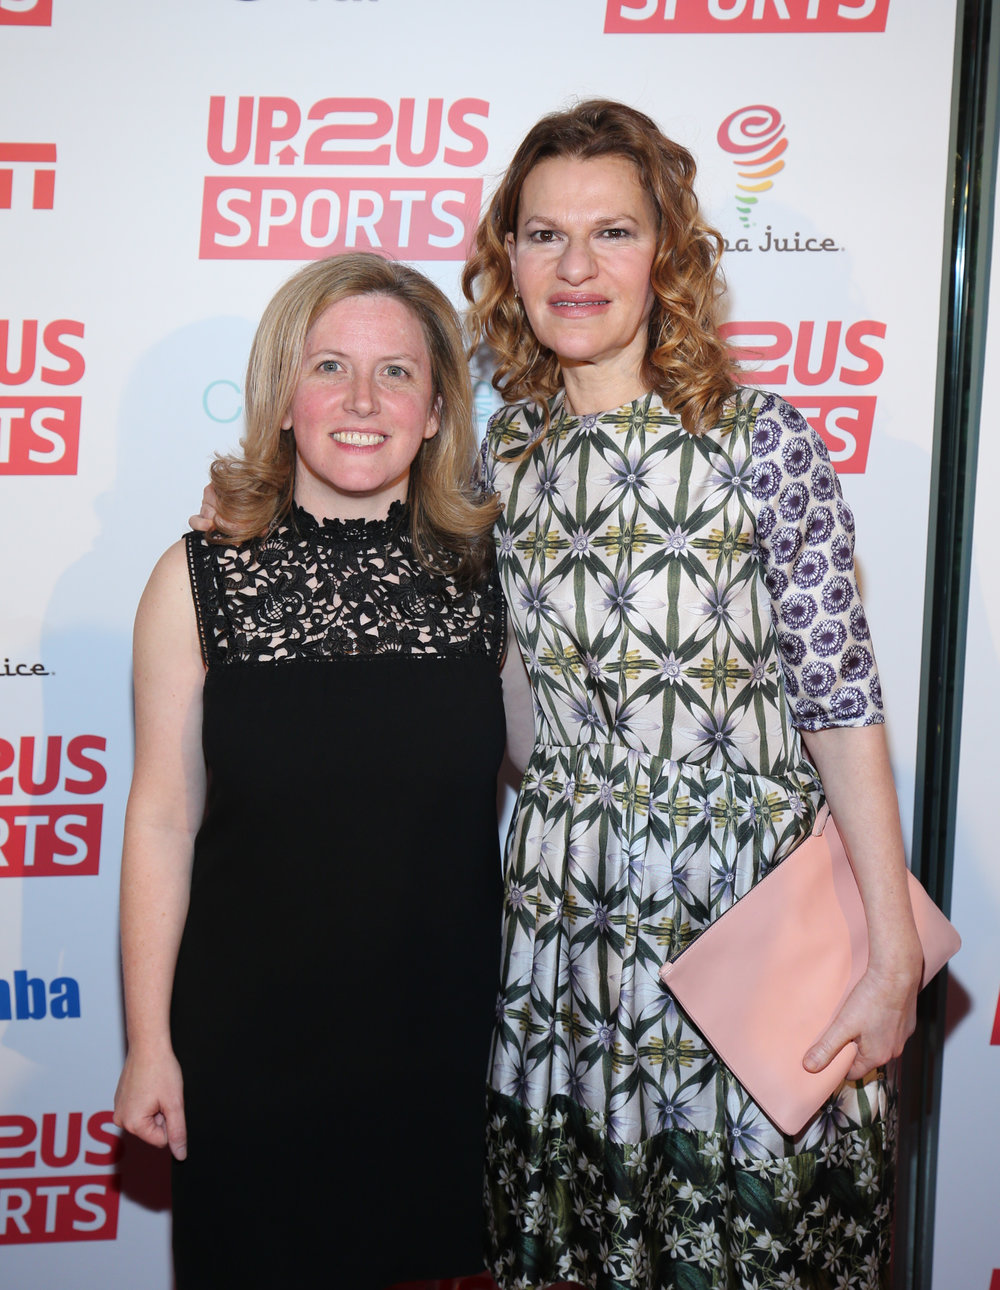 NEW YORK, NY - MAY 15: Megan Bartlett (L) and Sandra Bernhard attend the Up2Us Sports Gala 2017 at Guastavino's on May 15, 2017 in New York City. (Photo by Rob Kim/Getty Images for Up2Us Sports)